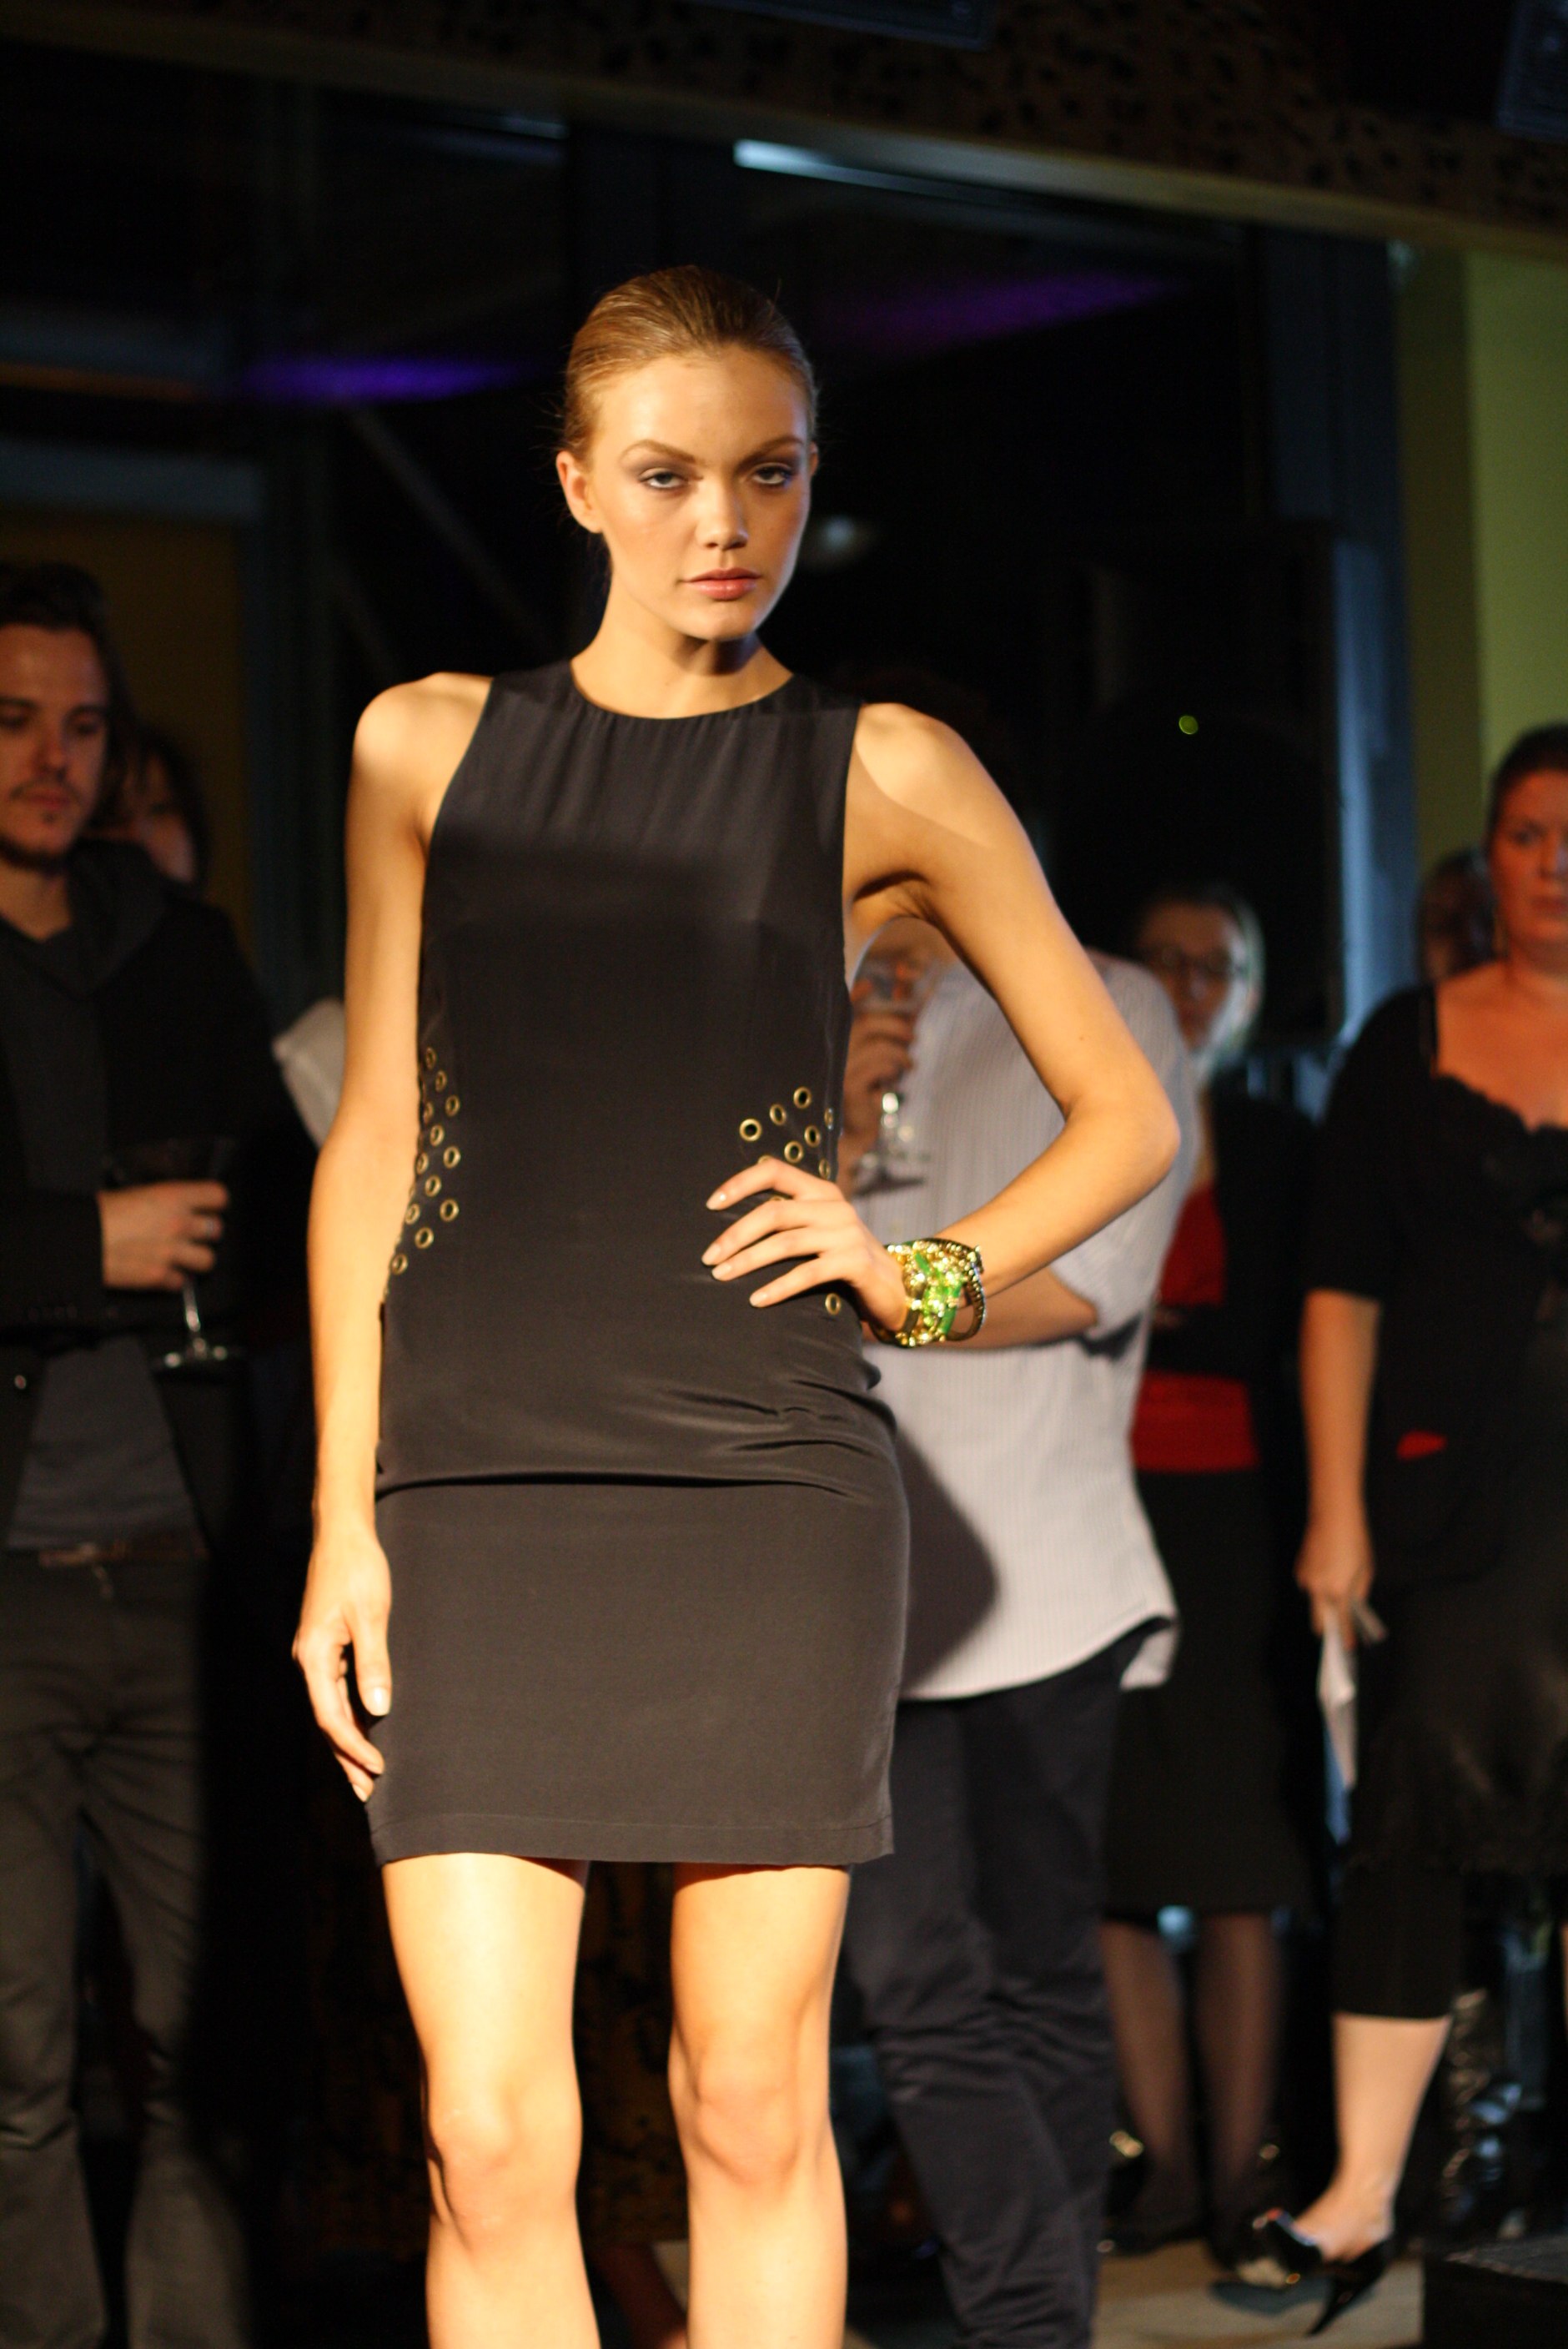 Model wearing a simple black sheath dress with brass rivet-like details at each side of the waist.